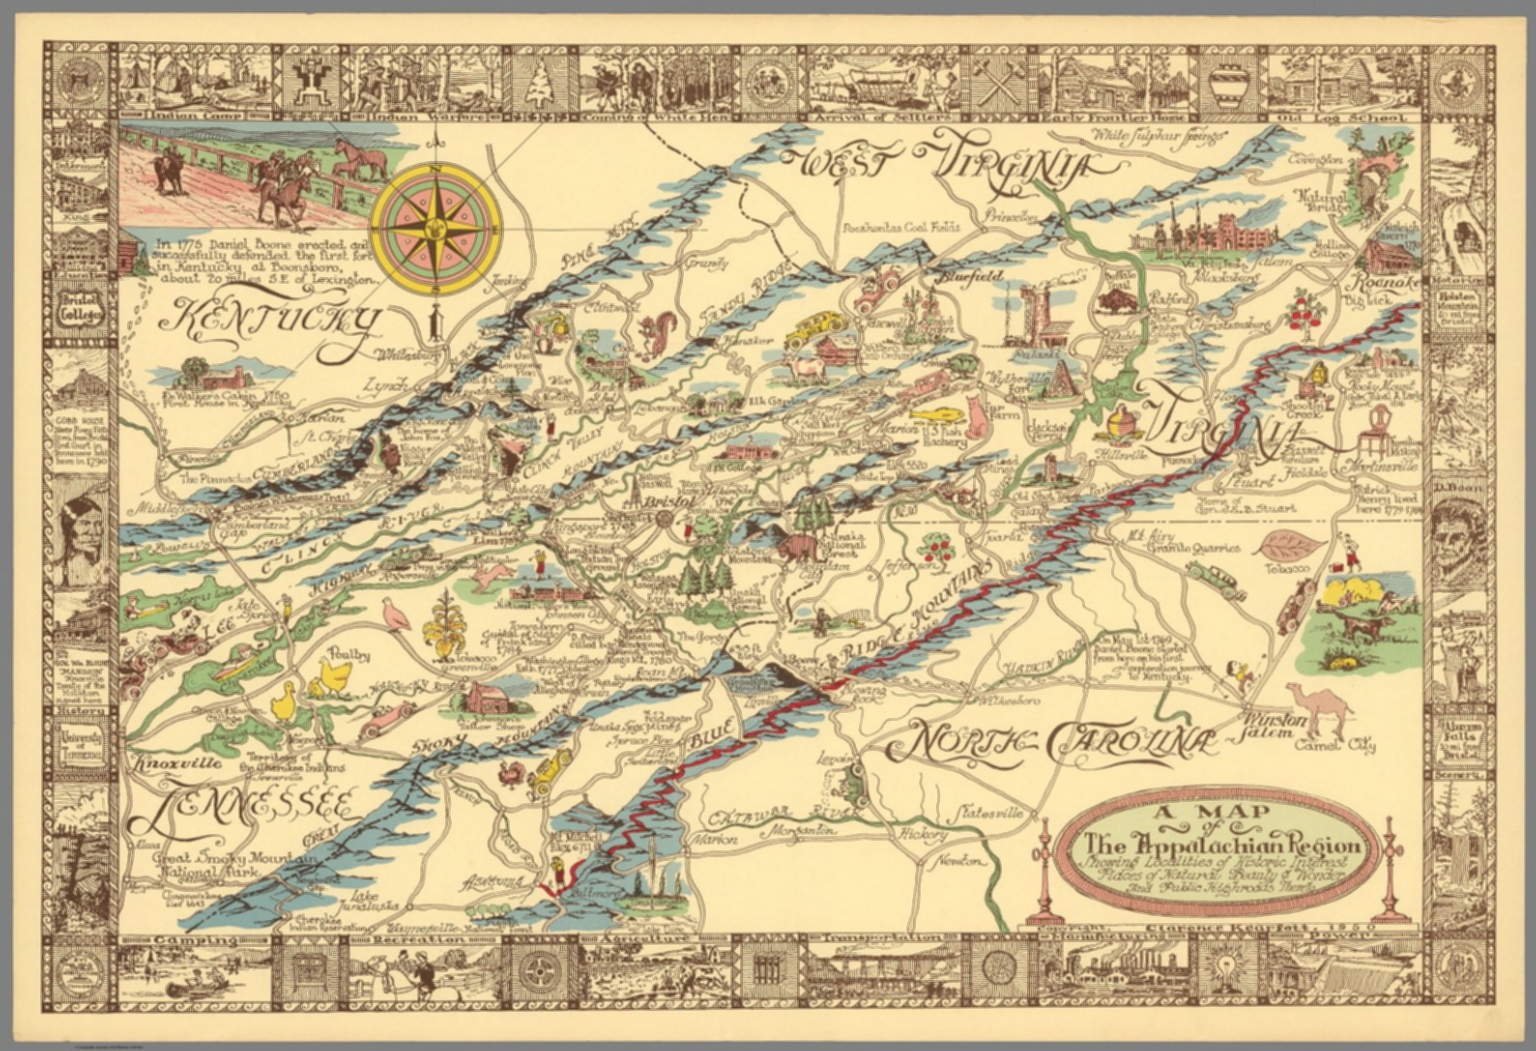 A Map Of The Appalachian Region David Rumsey Historical Map Collection - Appalachia map